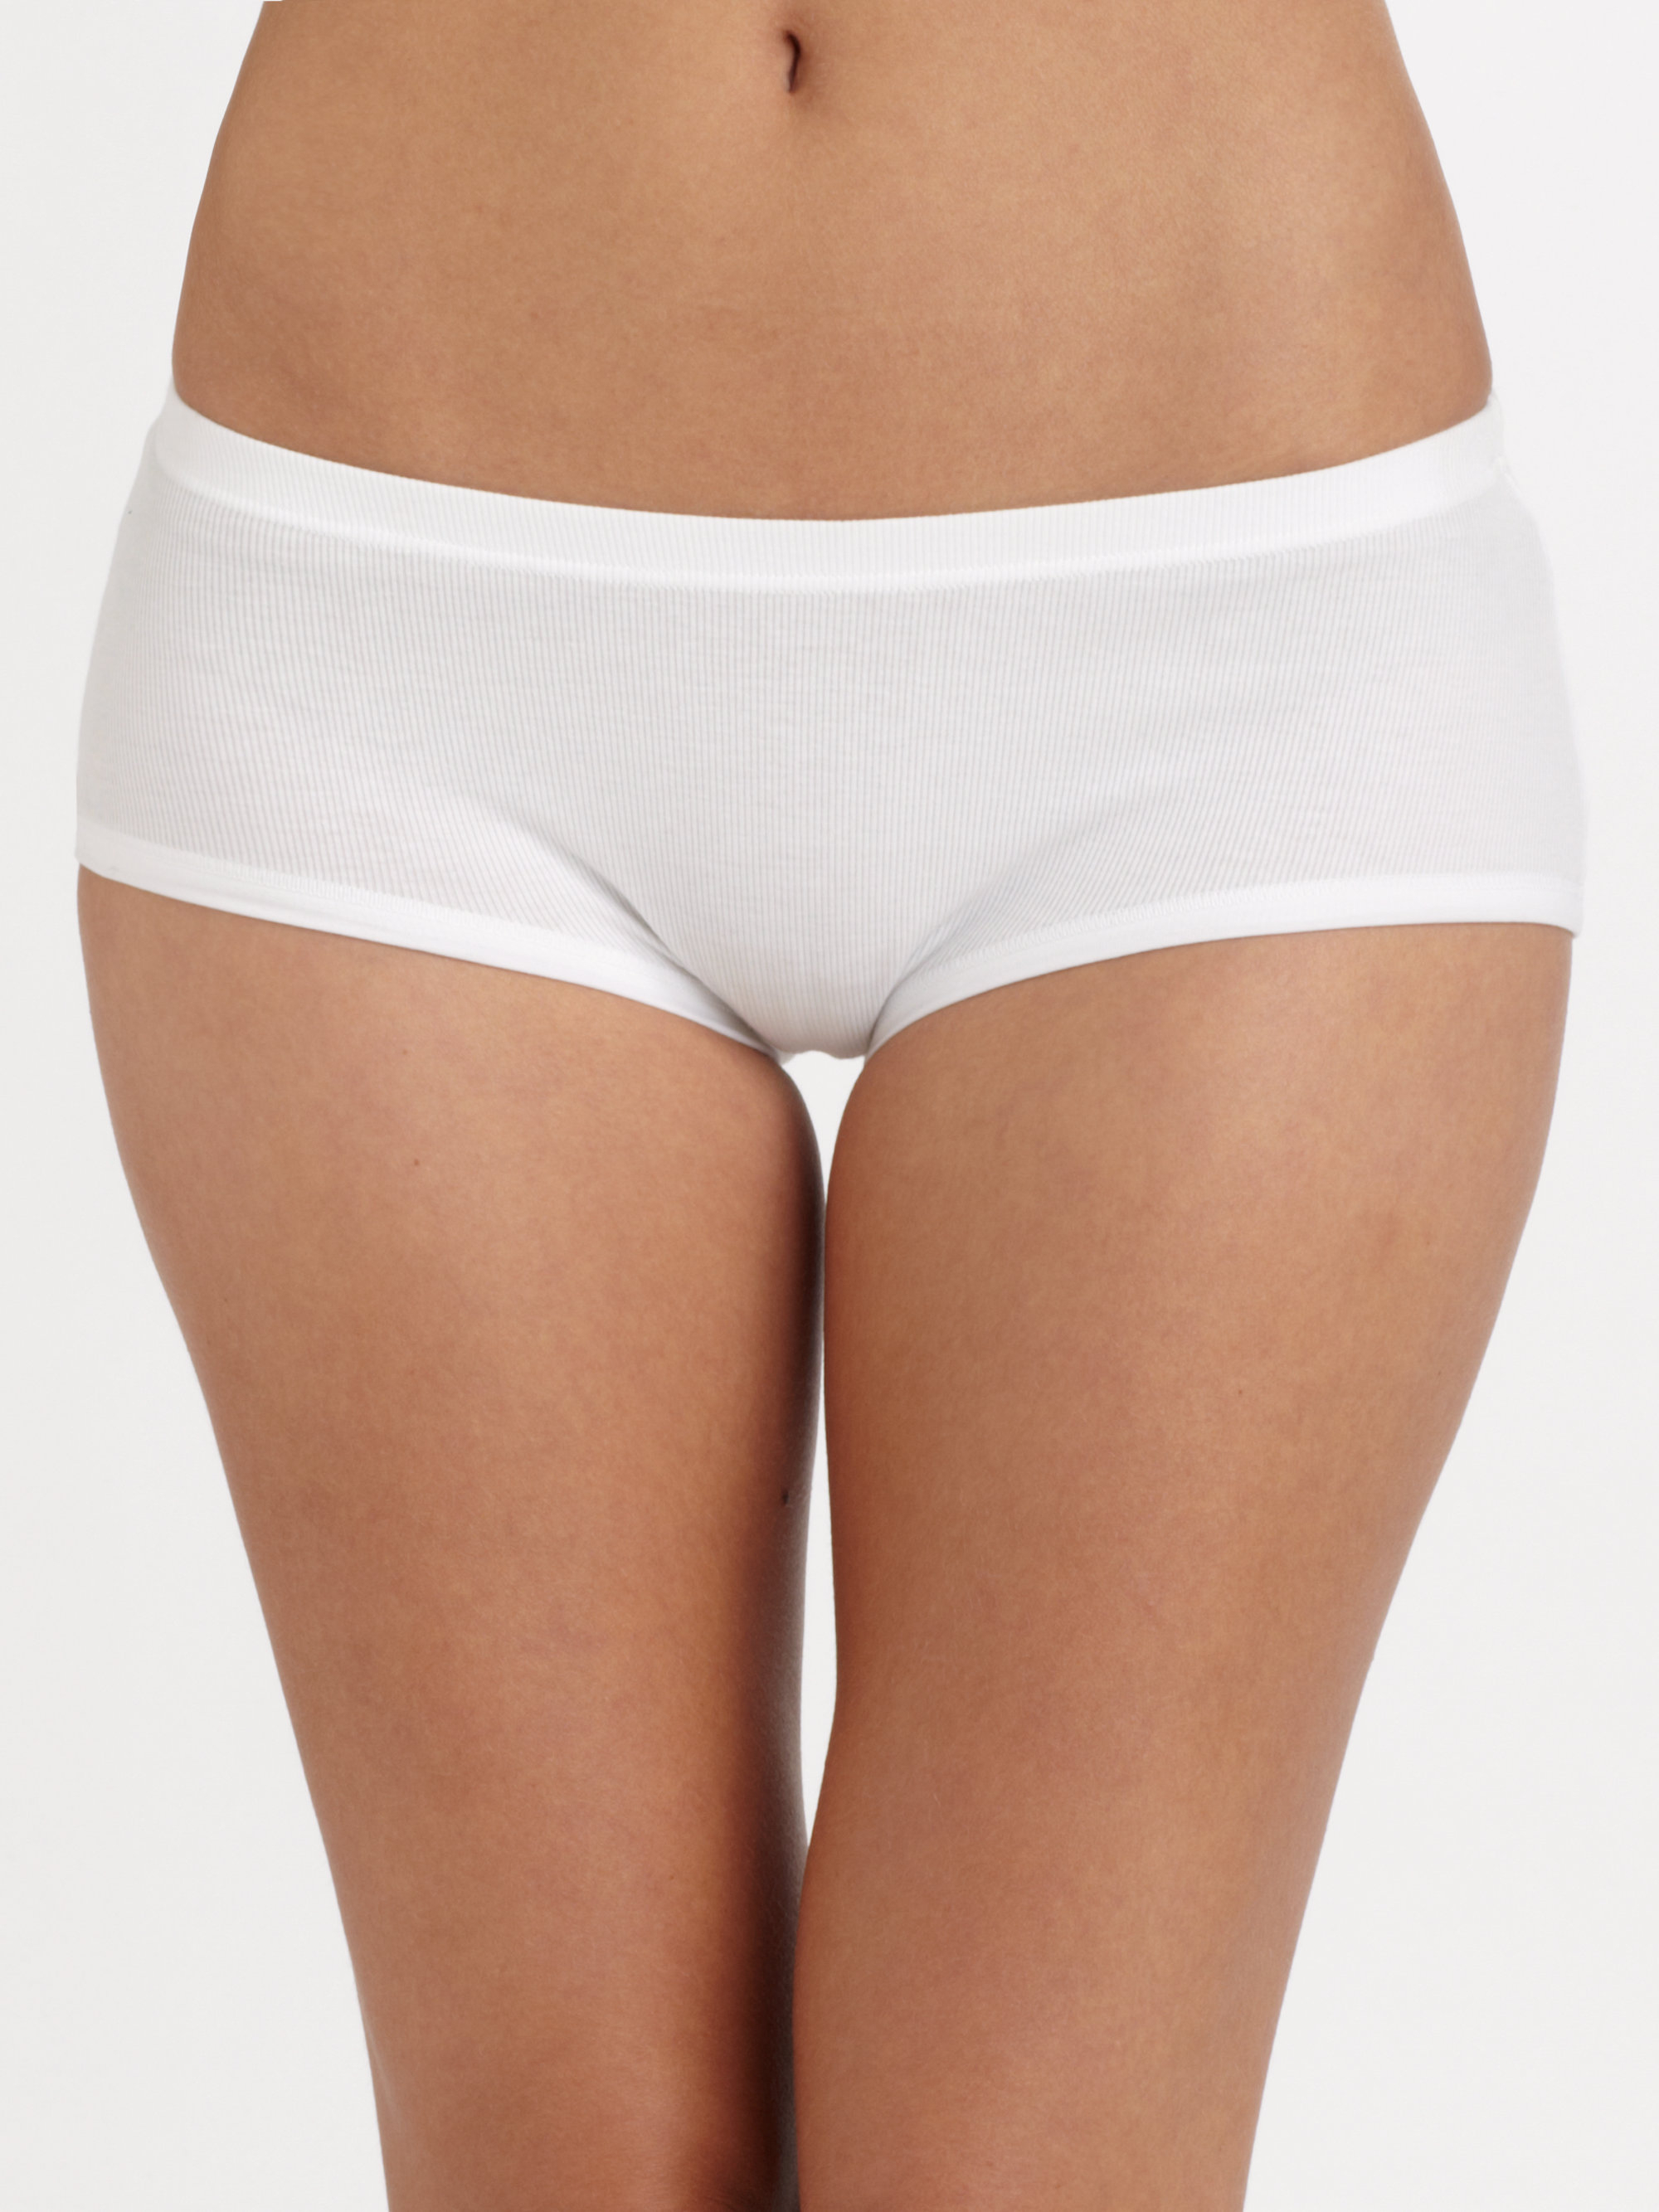 775ebf3a07 white-boyshort.jpeg